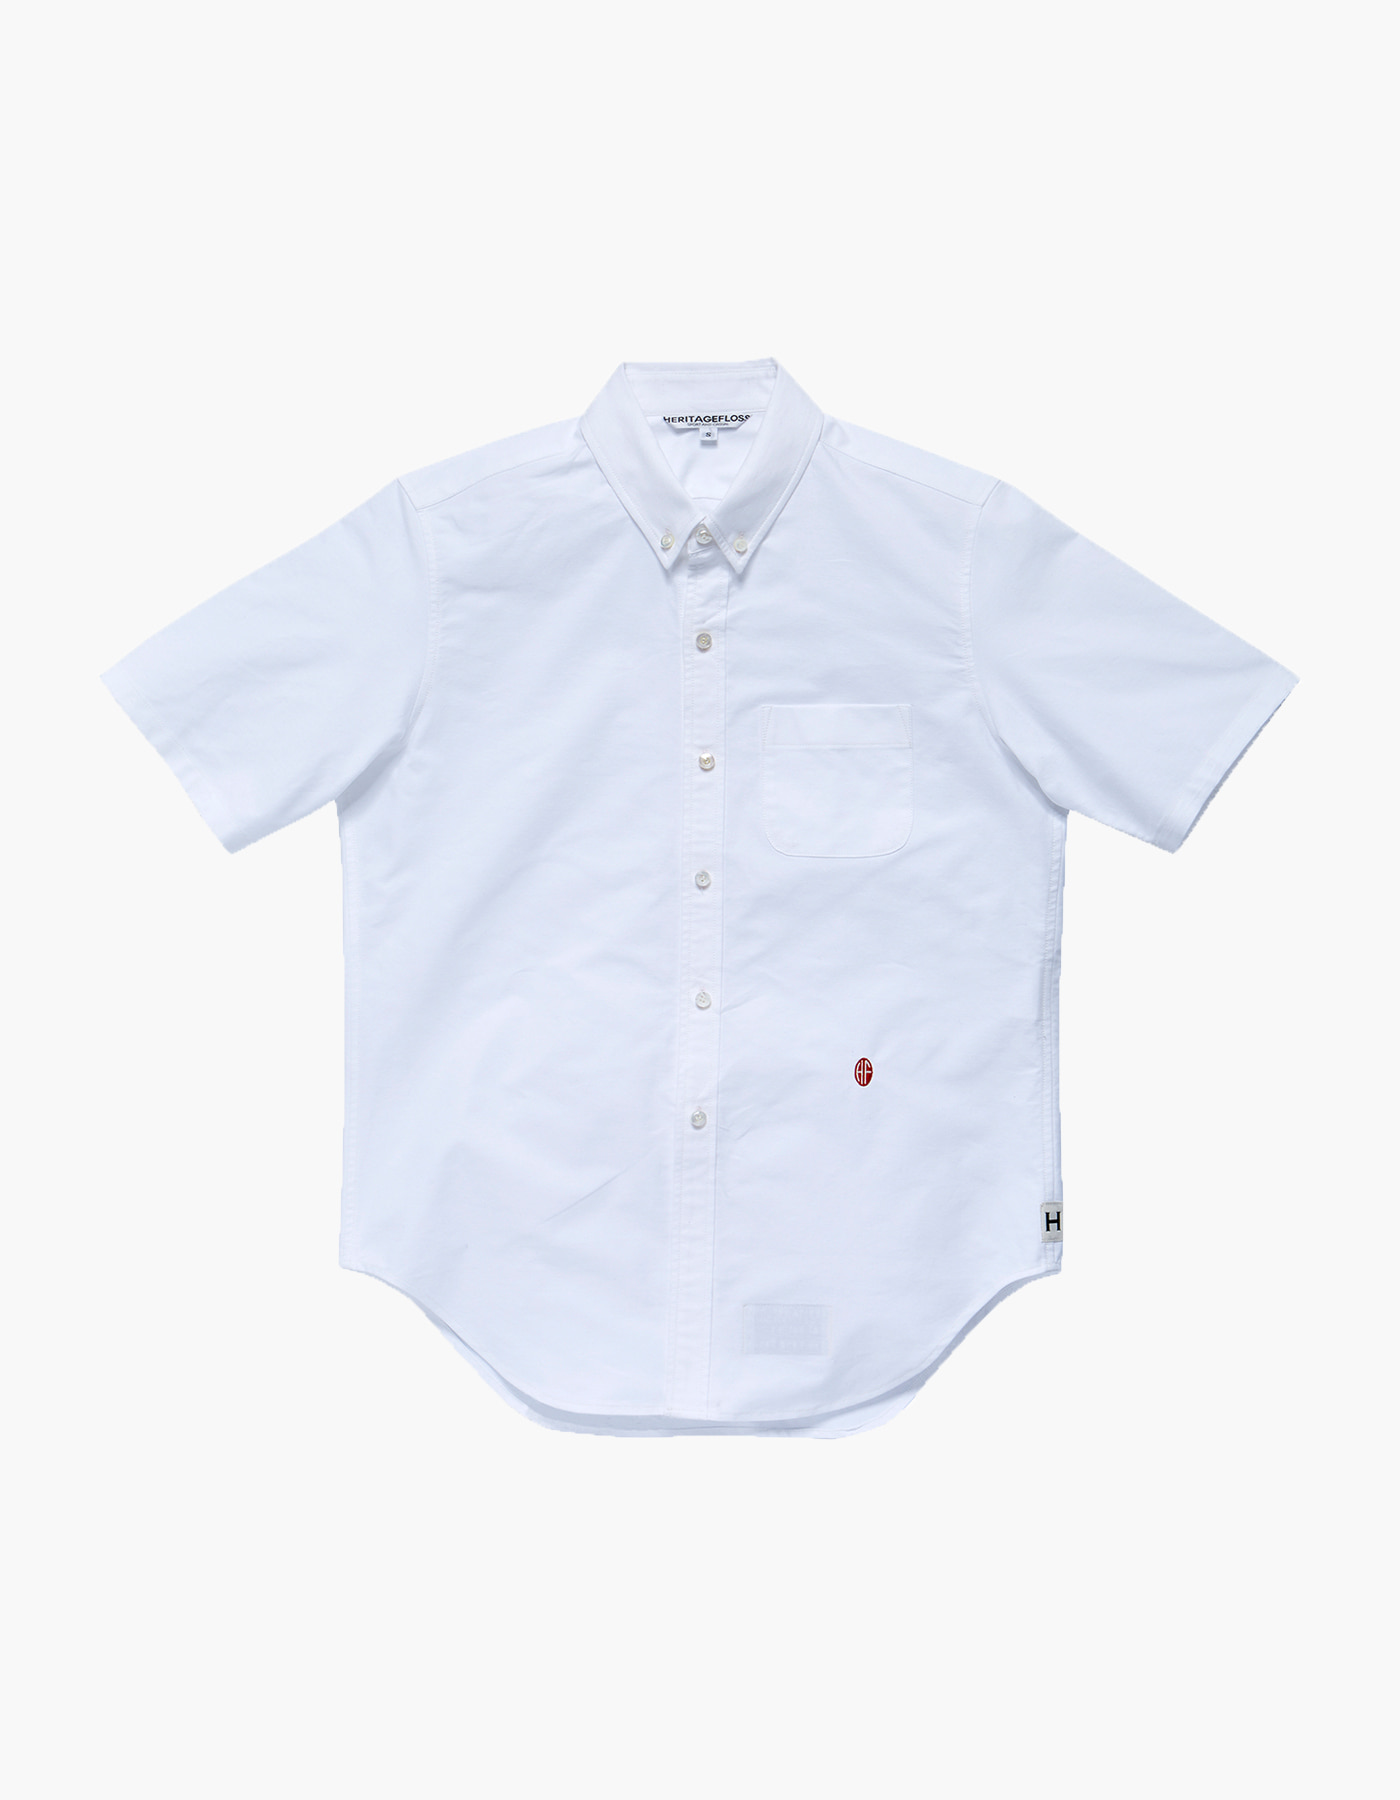 NON-WASHED OXFORD SPORT SHIRTS II / WHITE